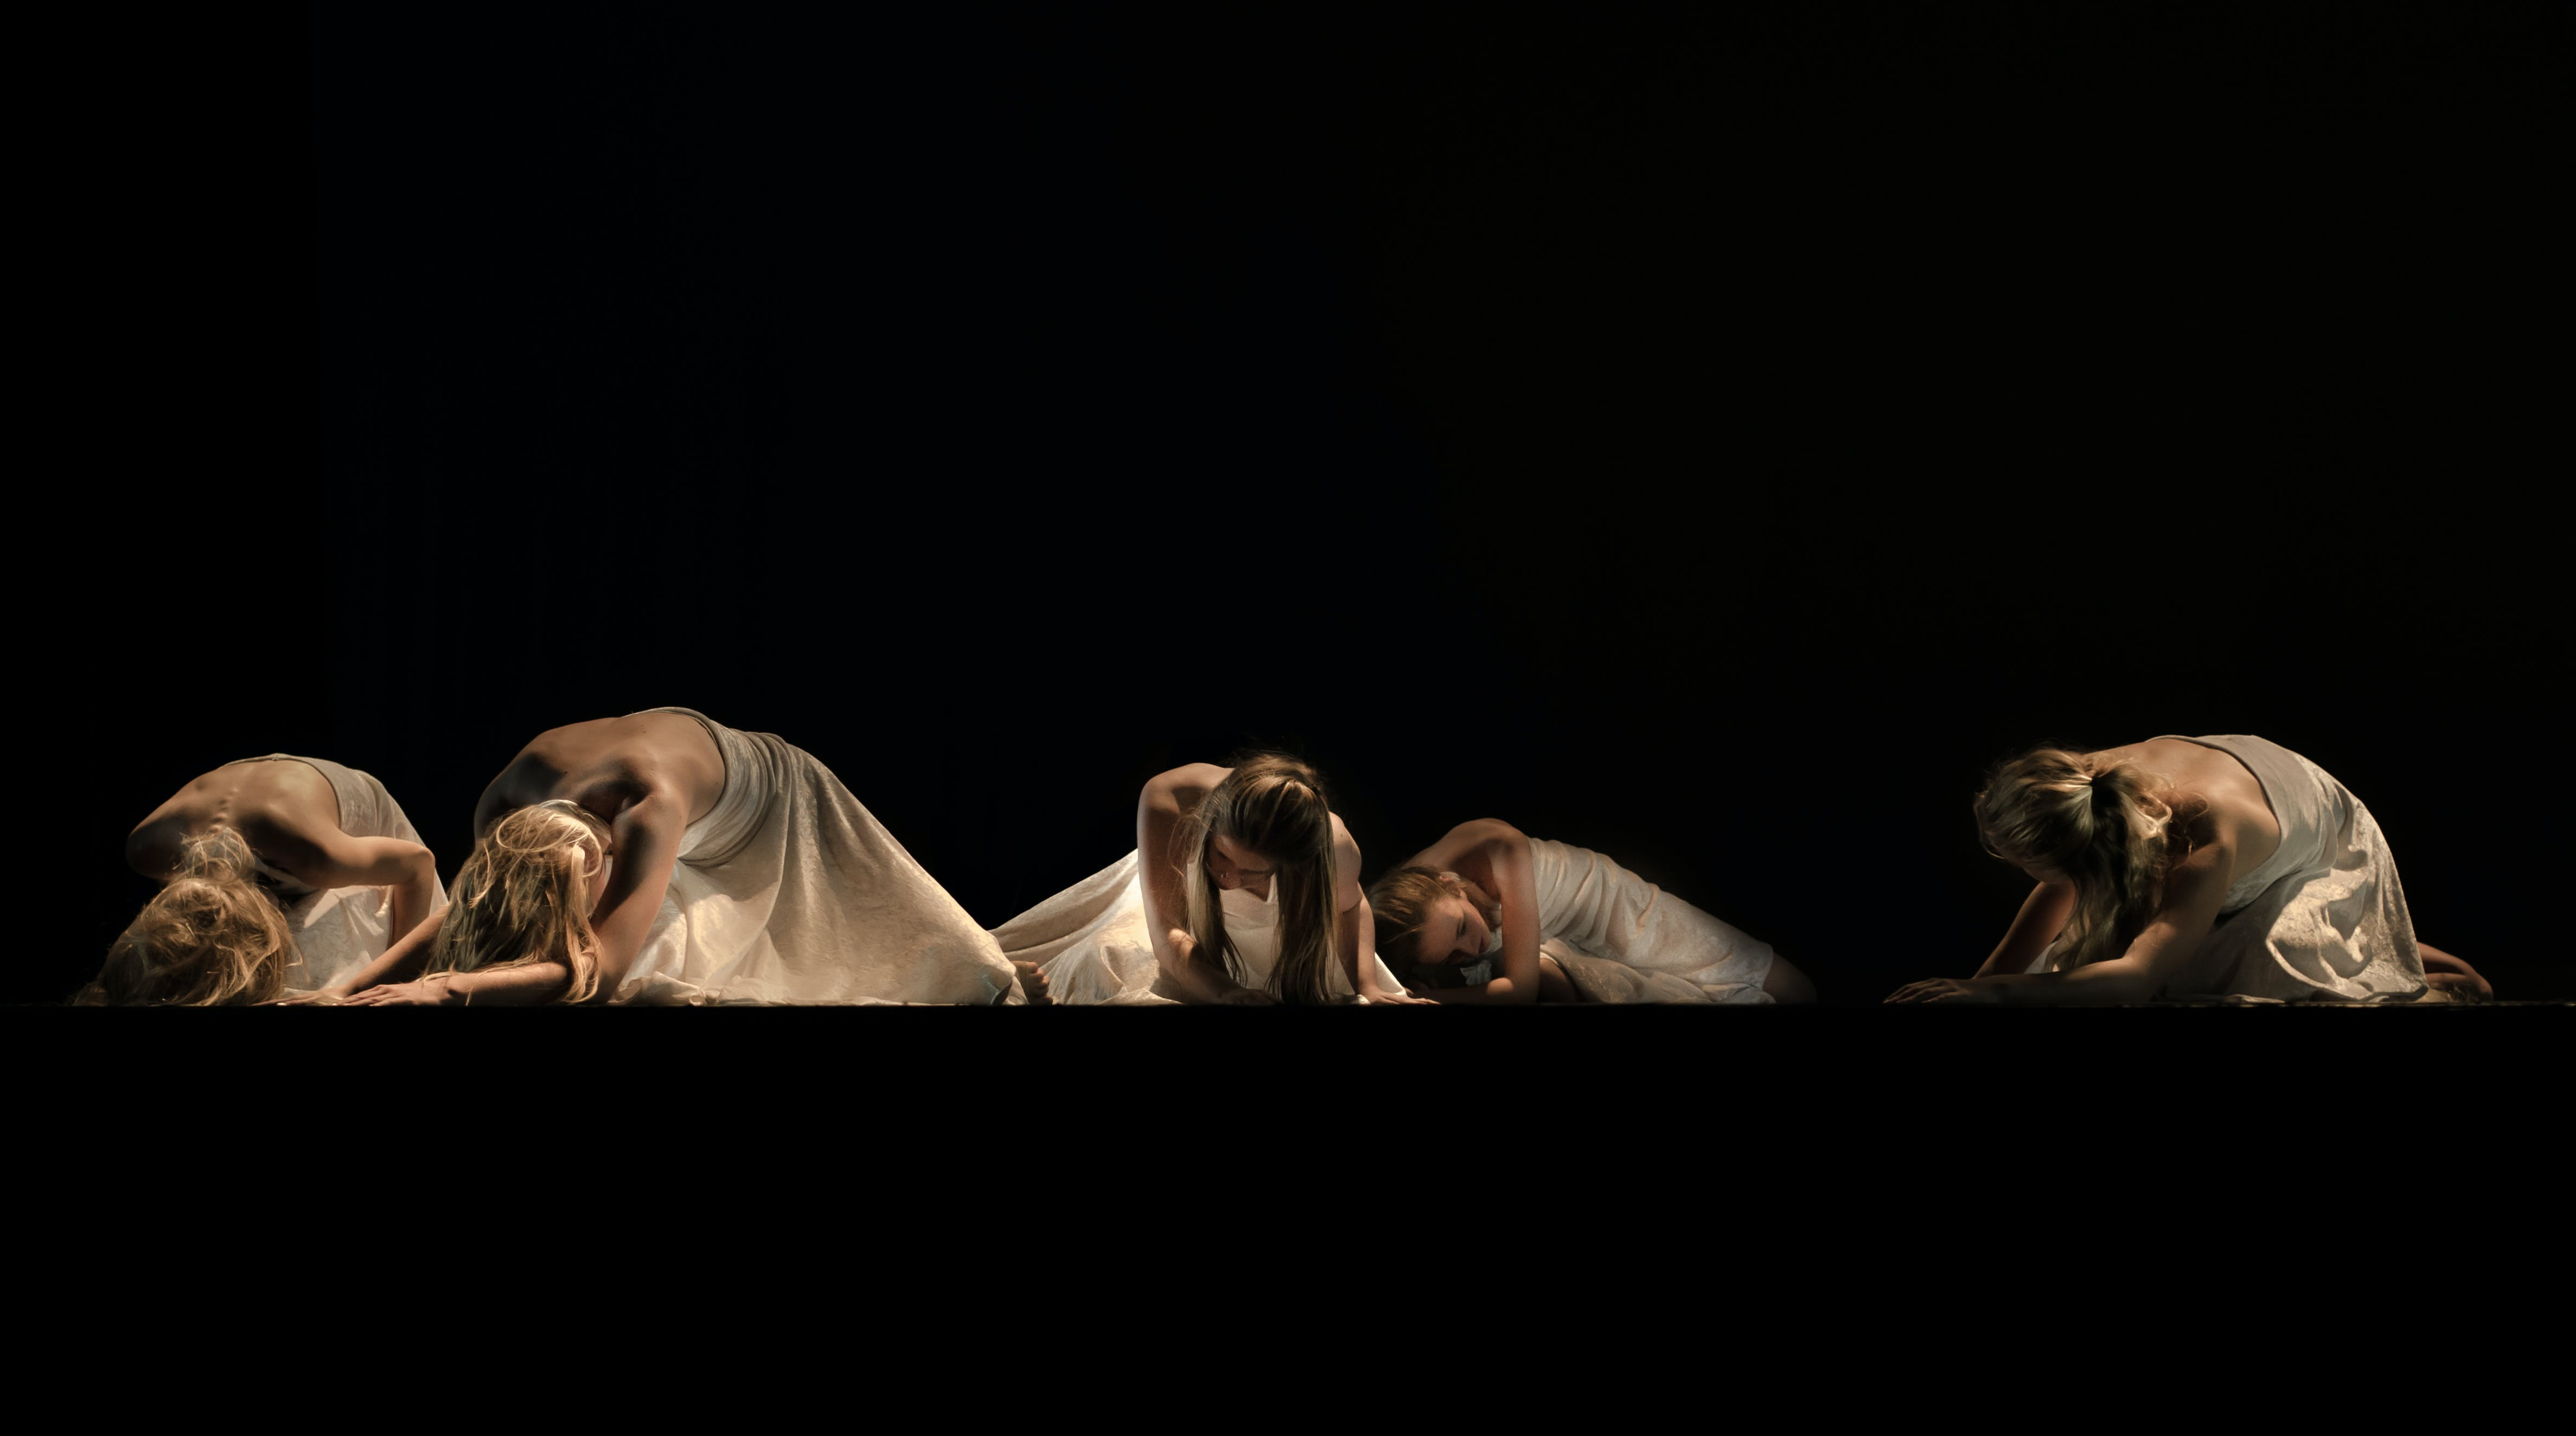 Five Woman in White Dress Lying on Ground